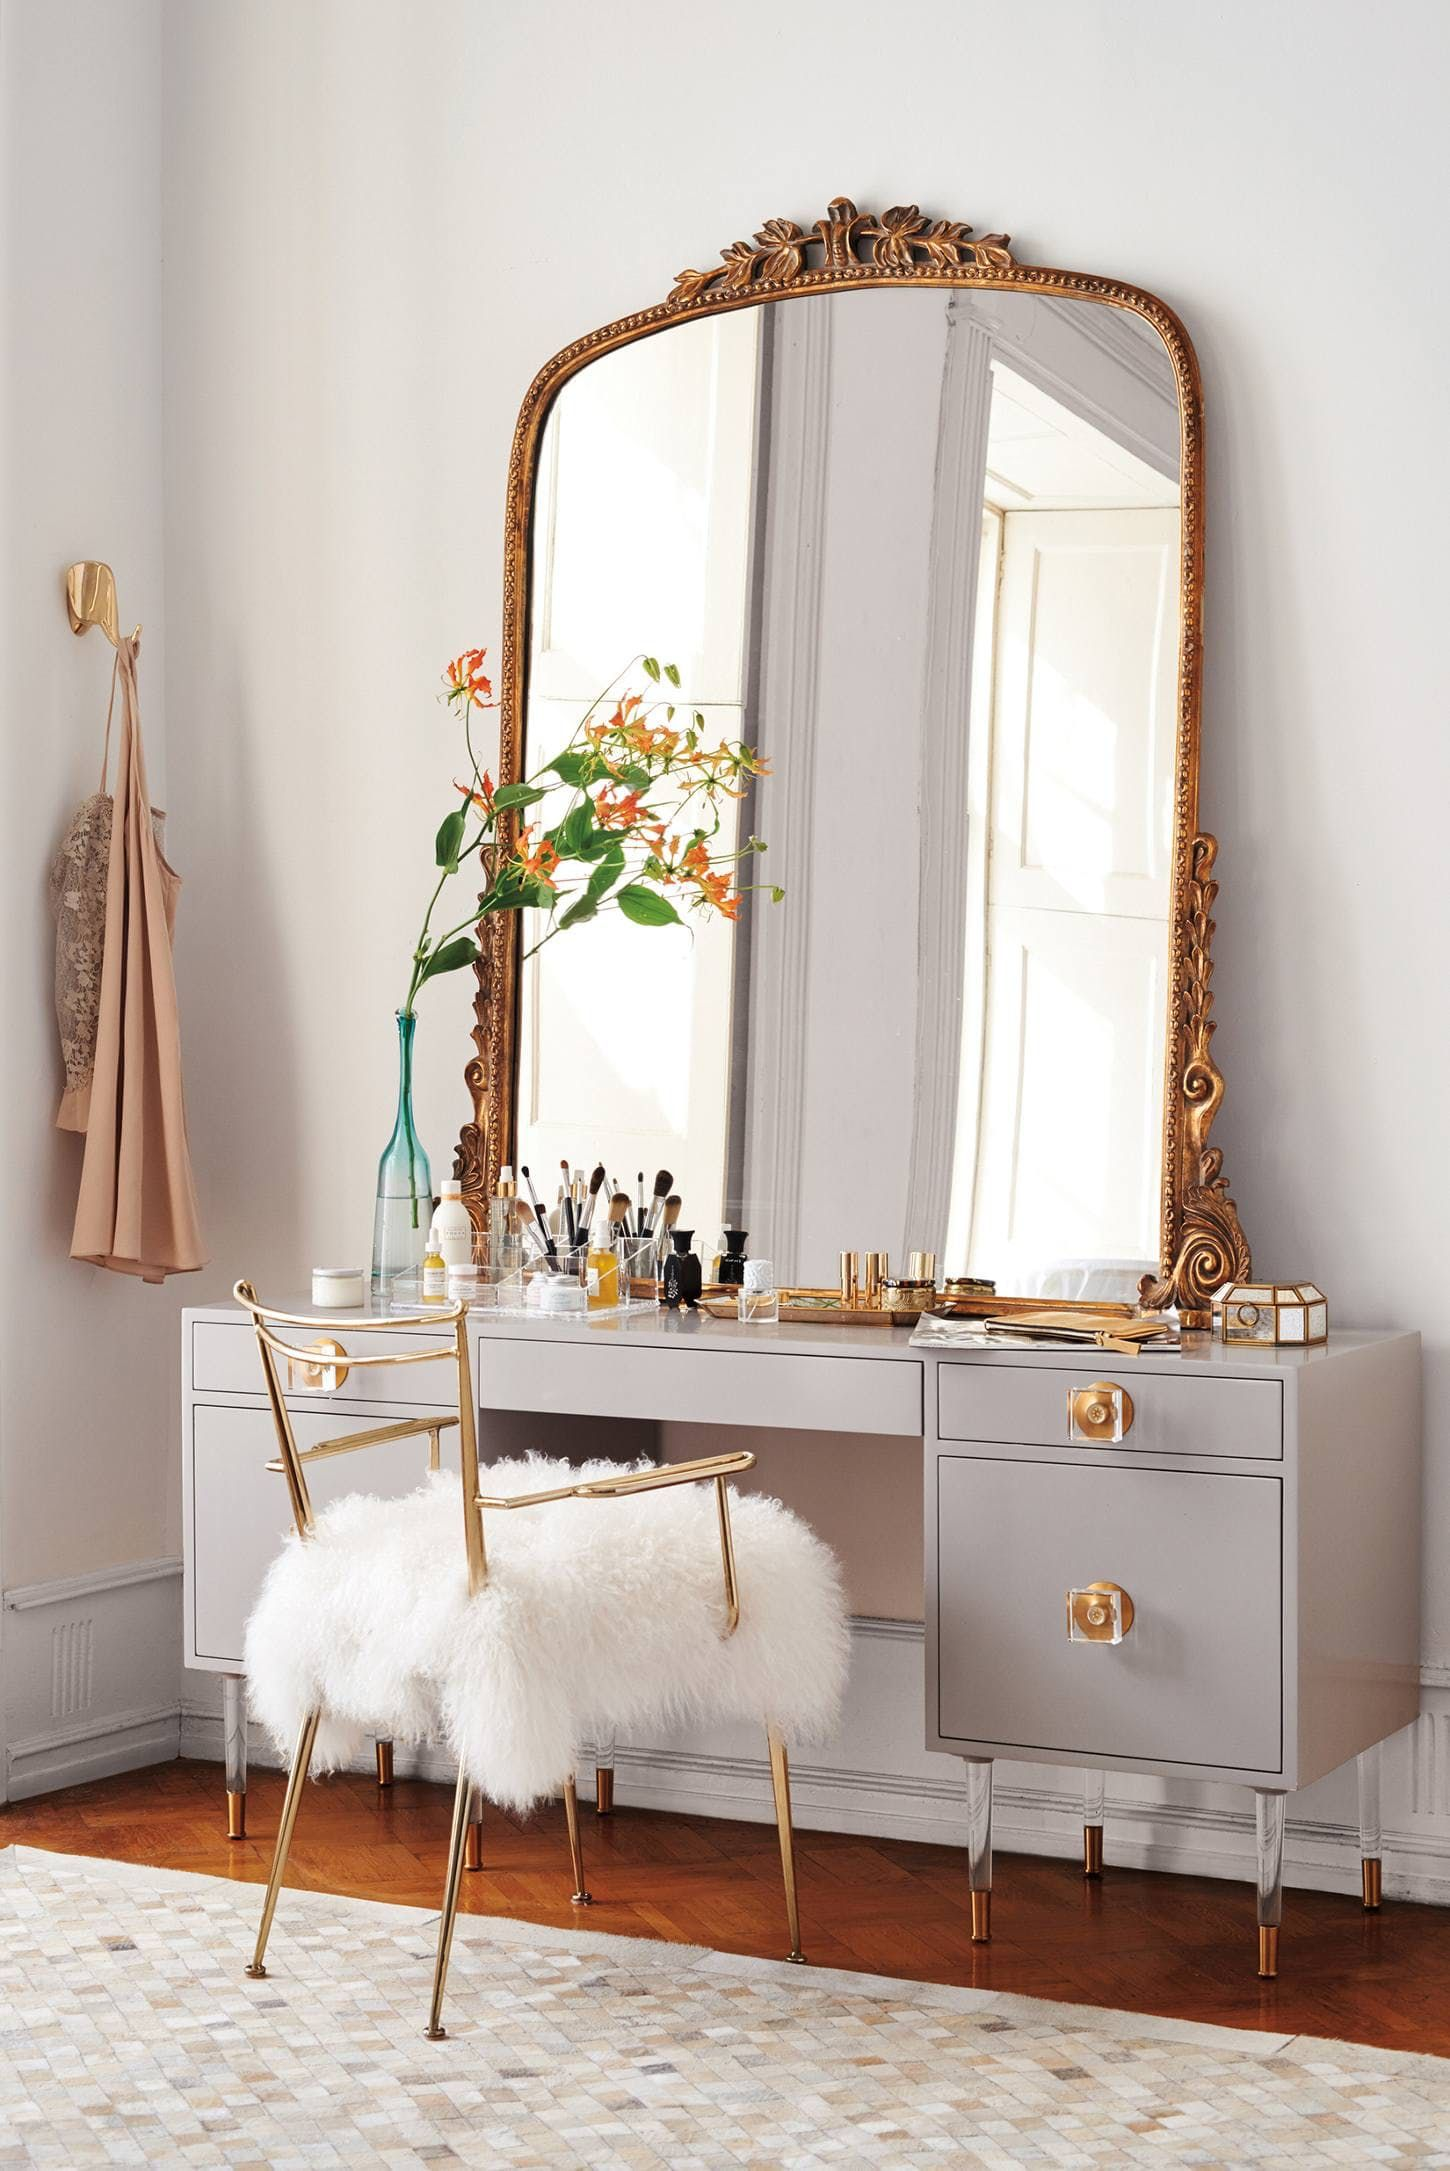 For The Beauty Room 10 Of Our Favorite Modern Makeup Vanity Tables Annual Guide 2016